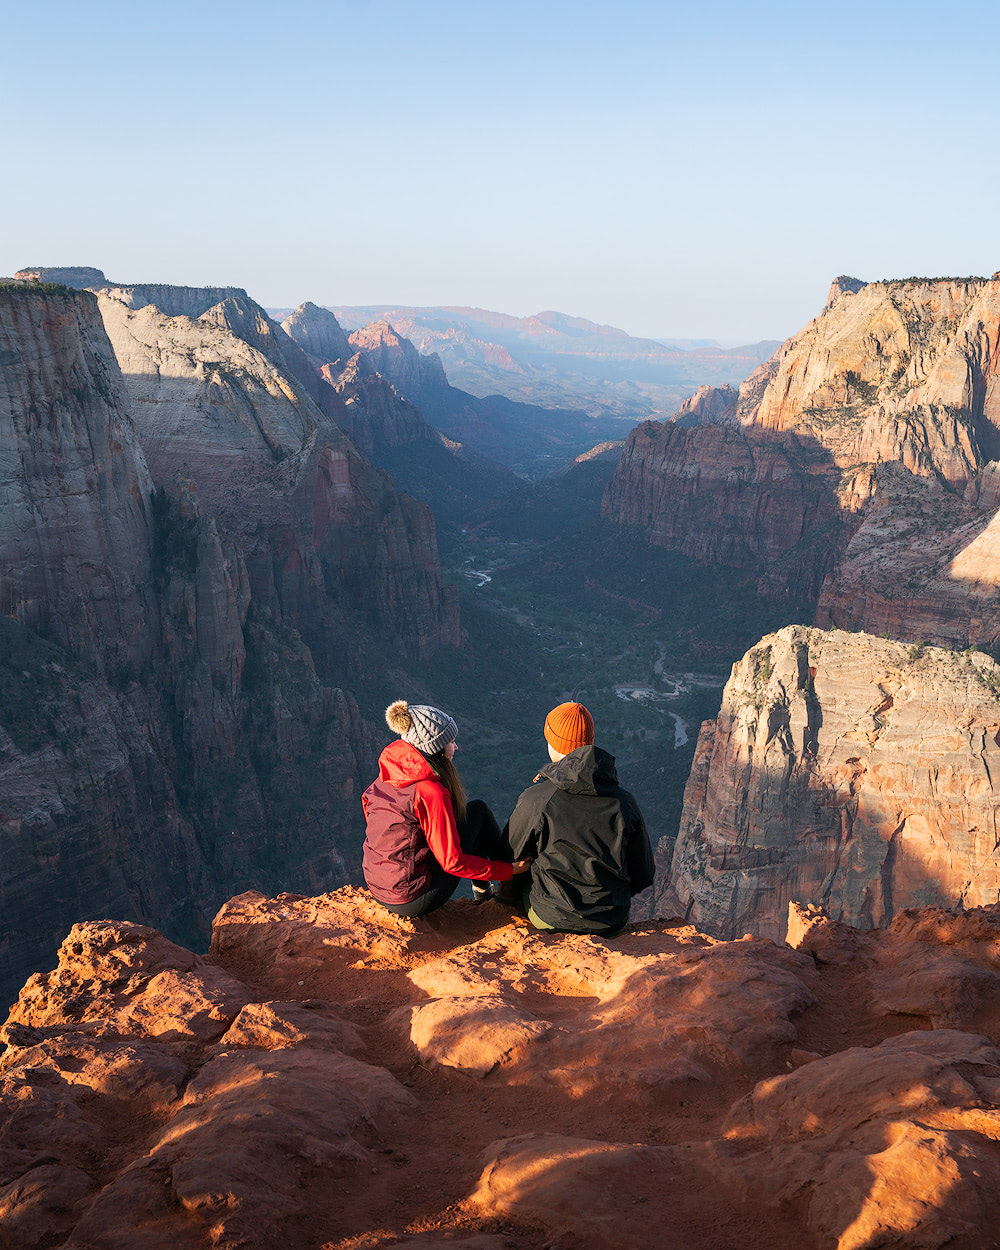 The Ultimate Guide to Exploring Zion National Park - Observation Point